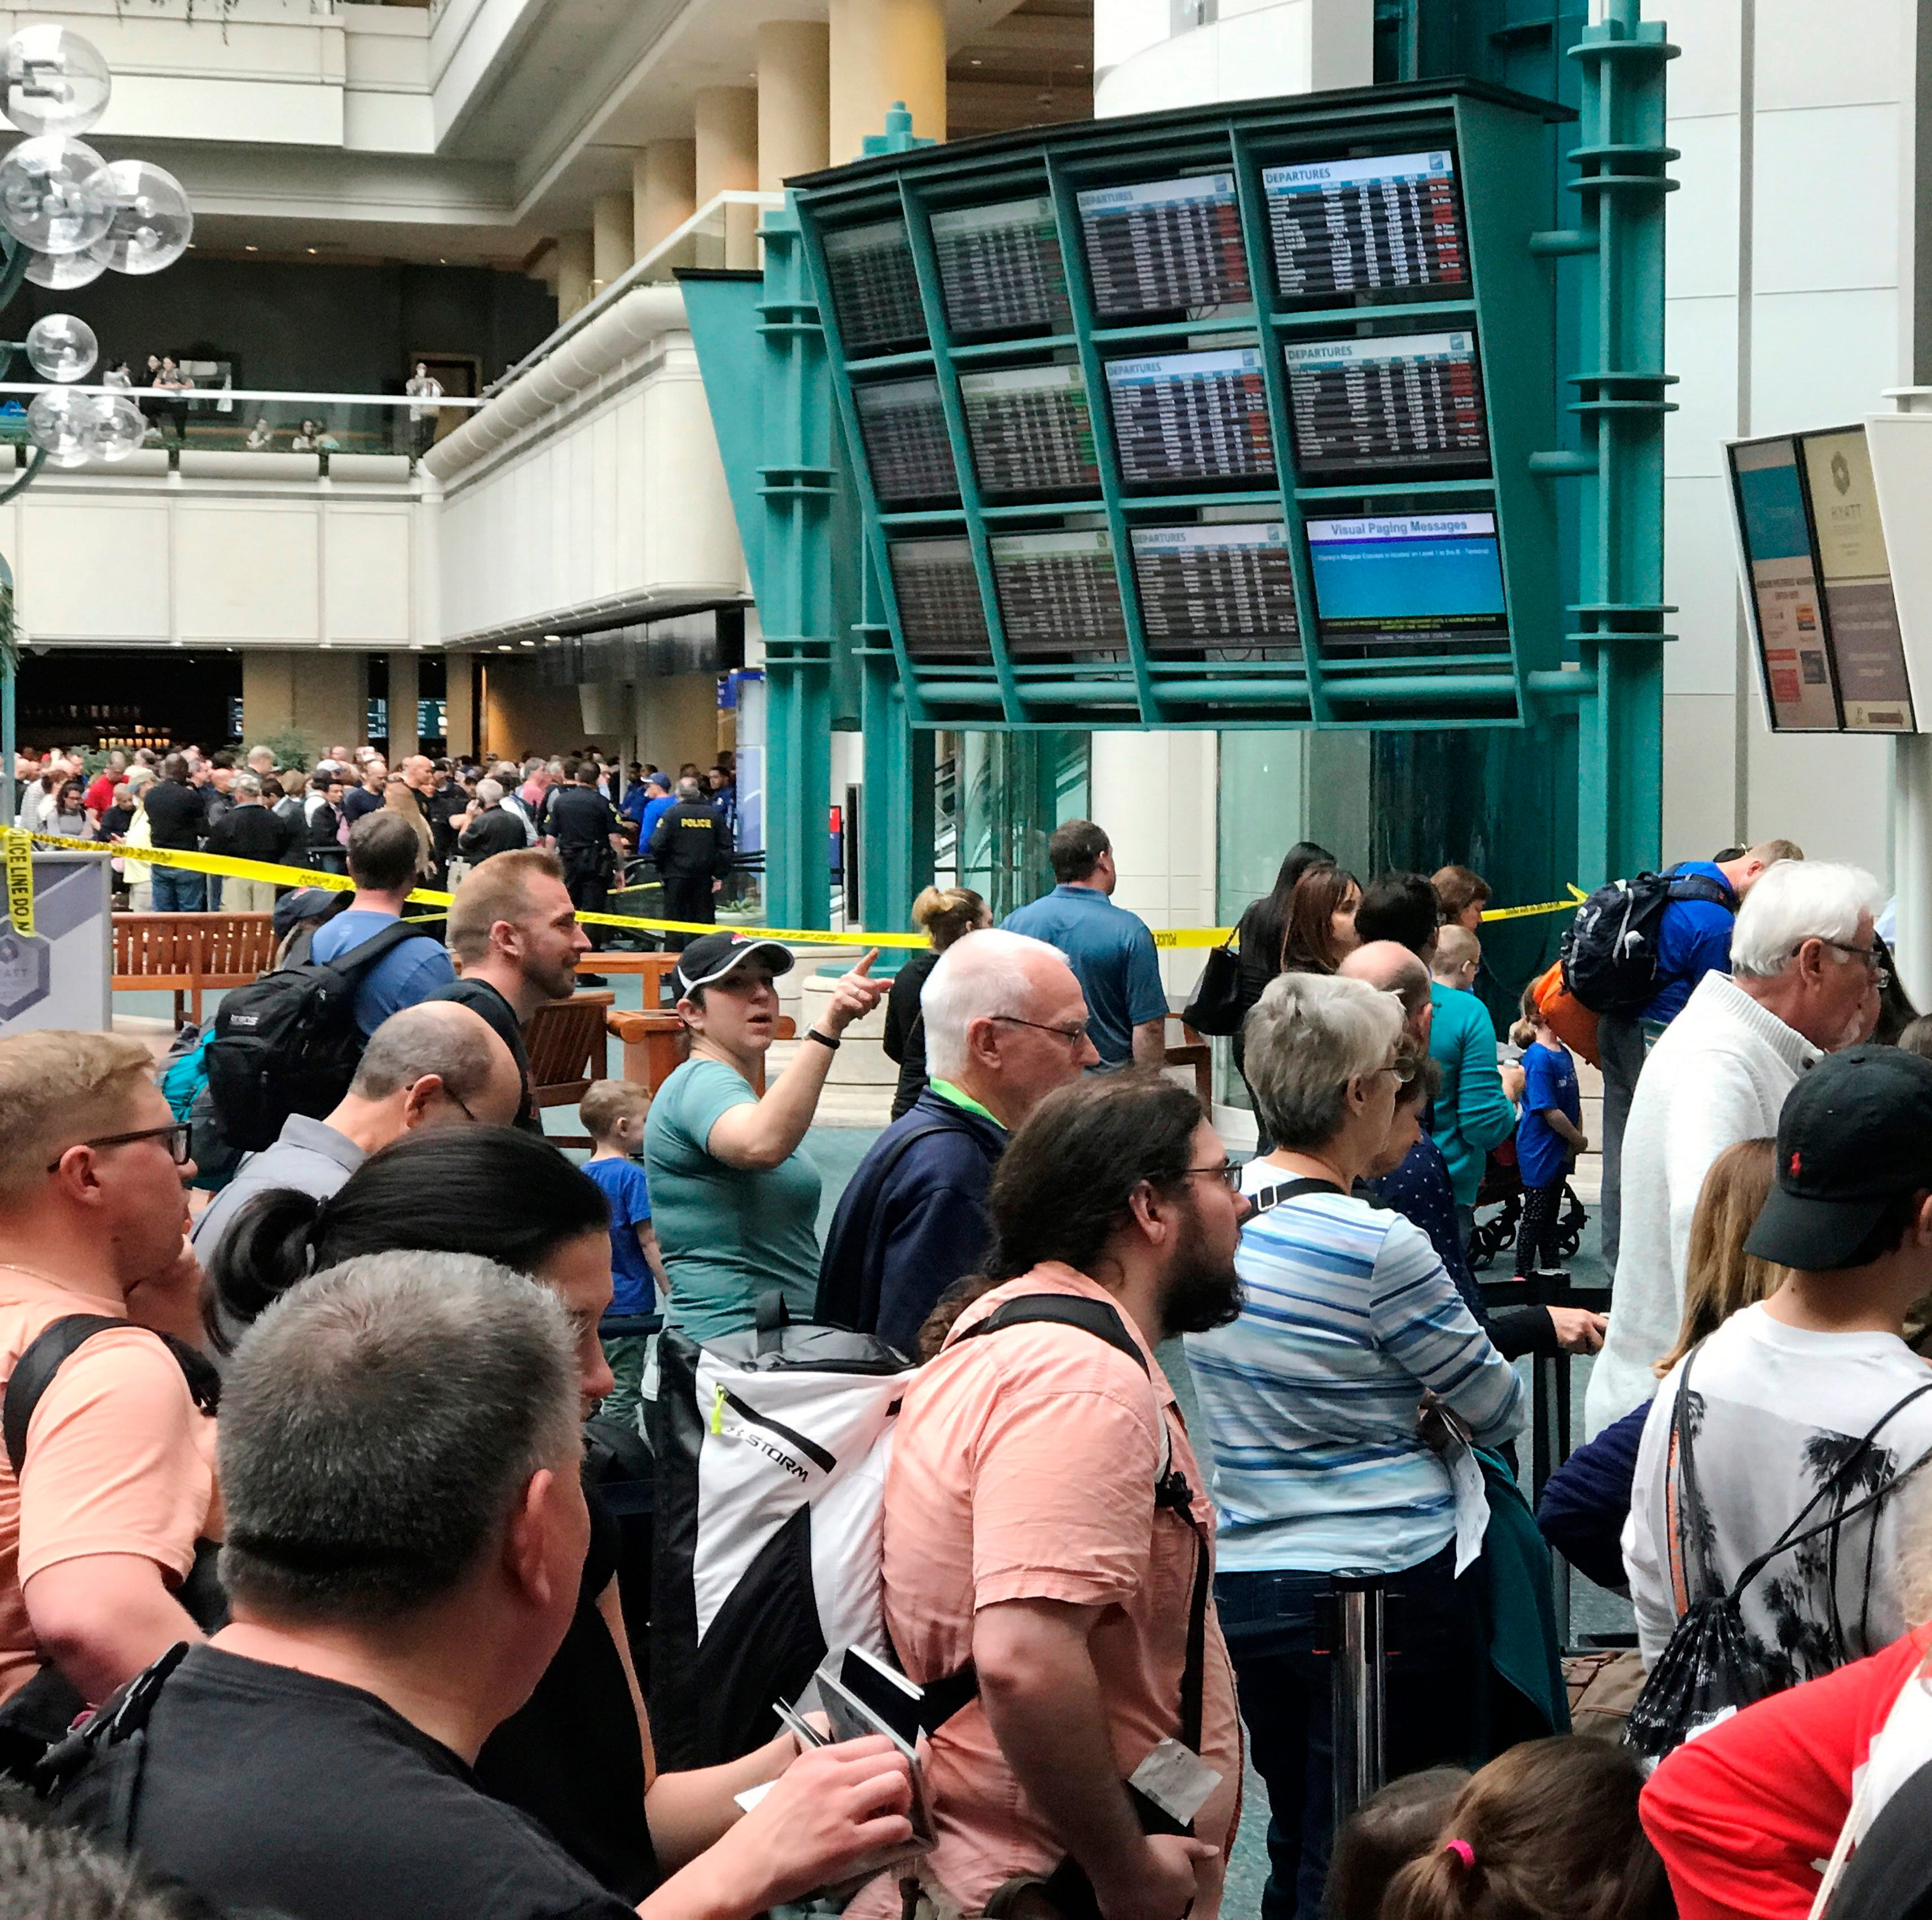 Orlando International Airport: Attempted security breach causes 'chaos'